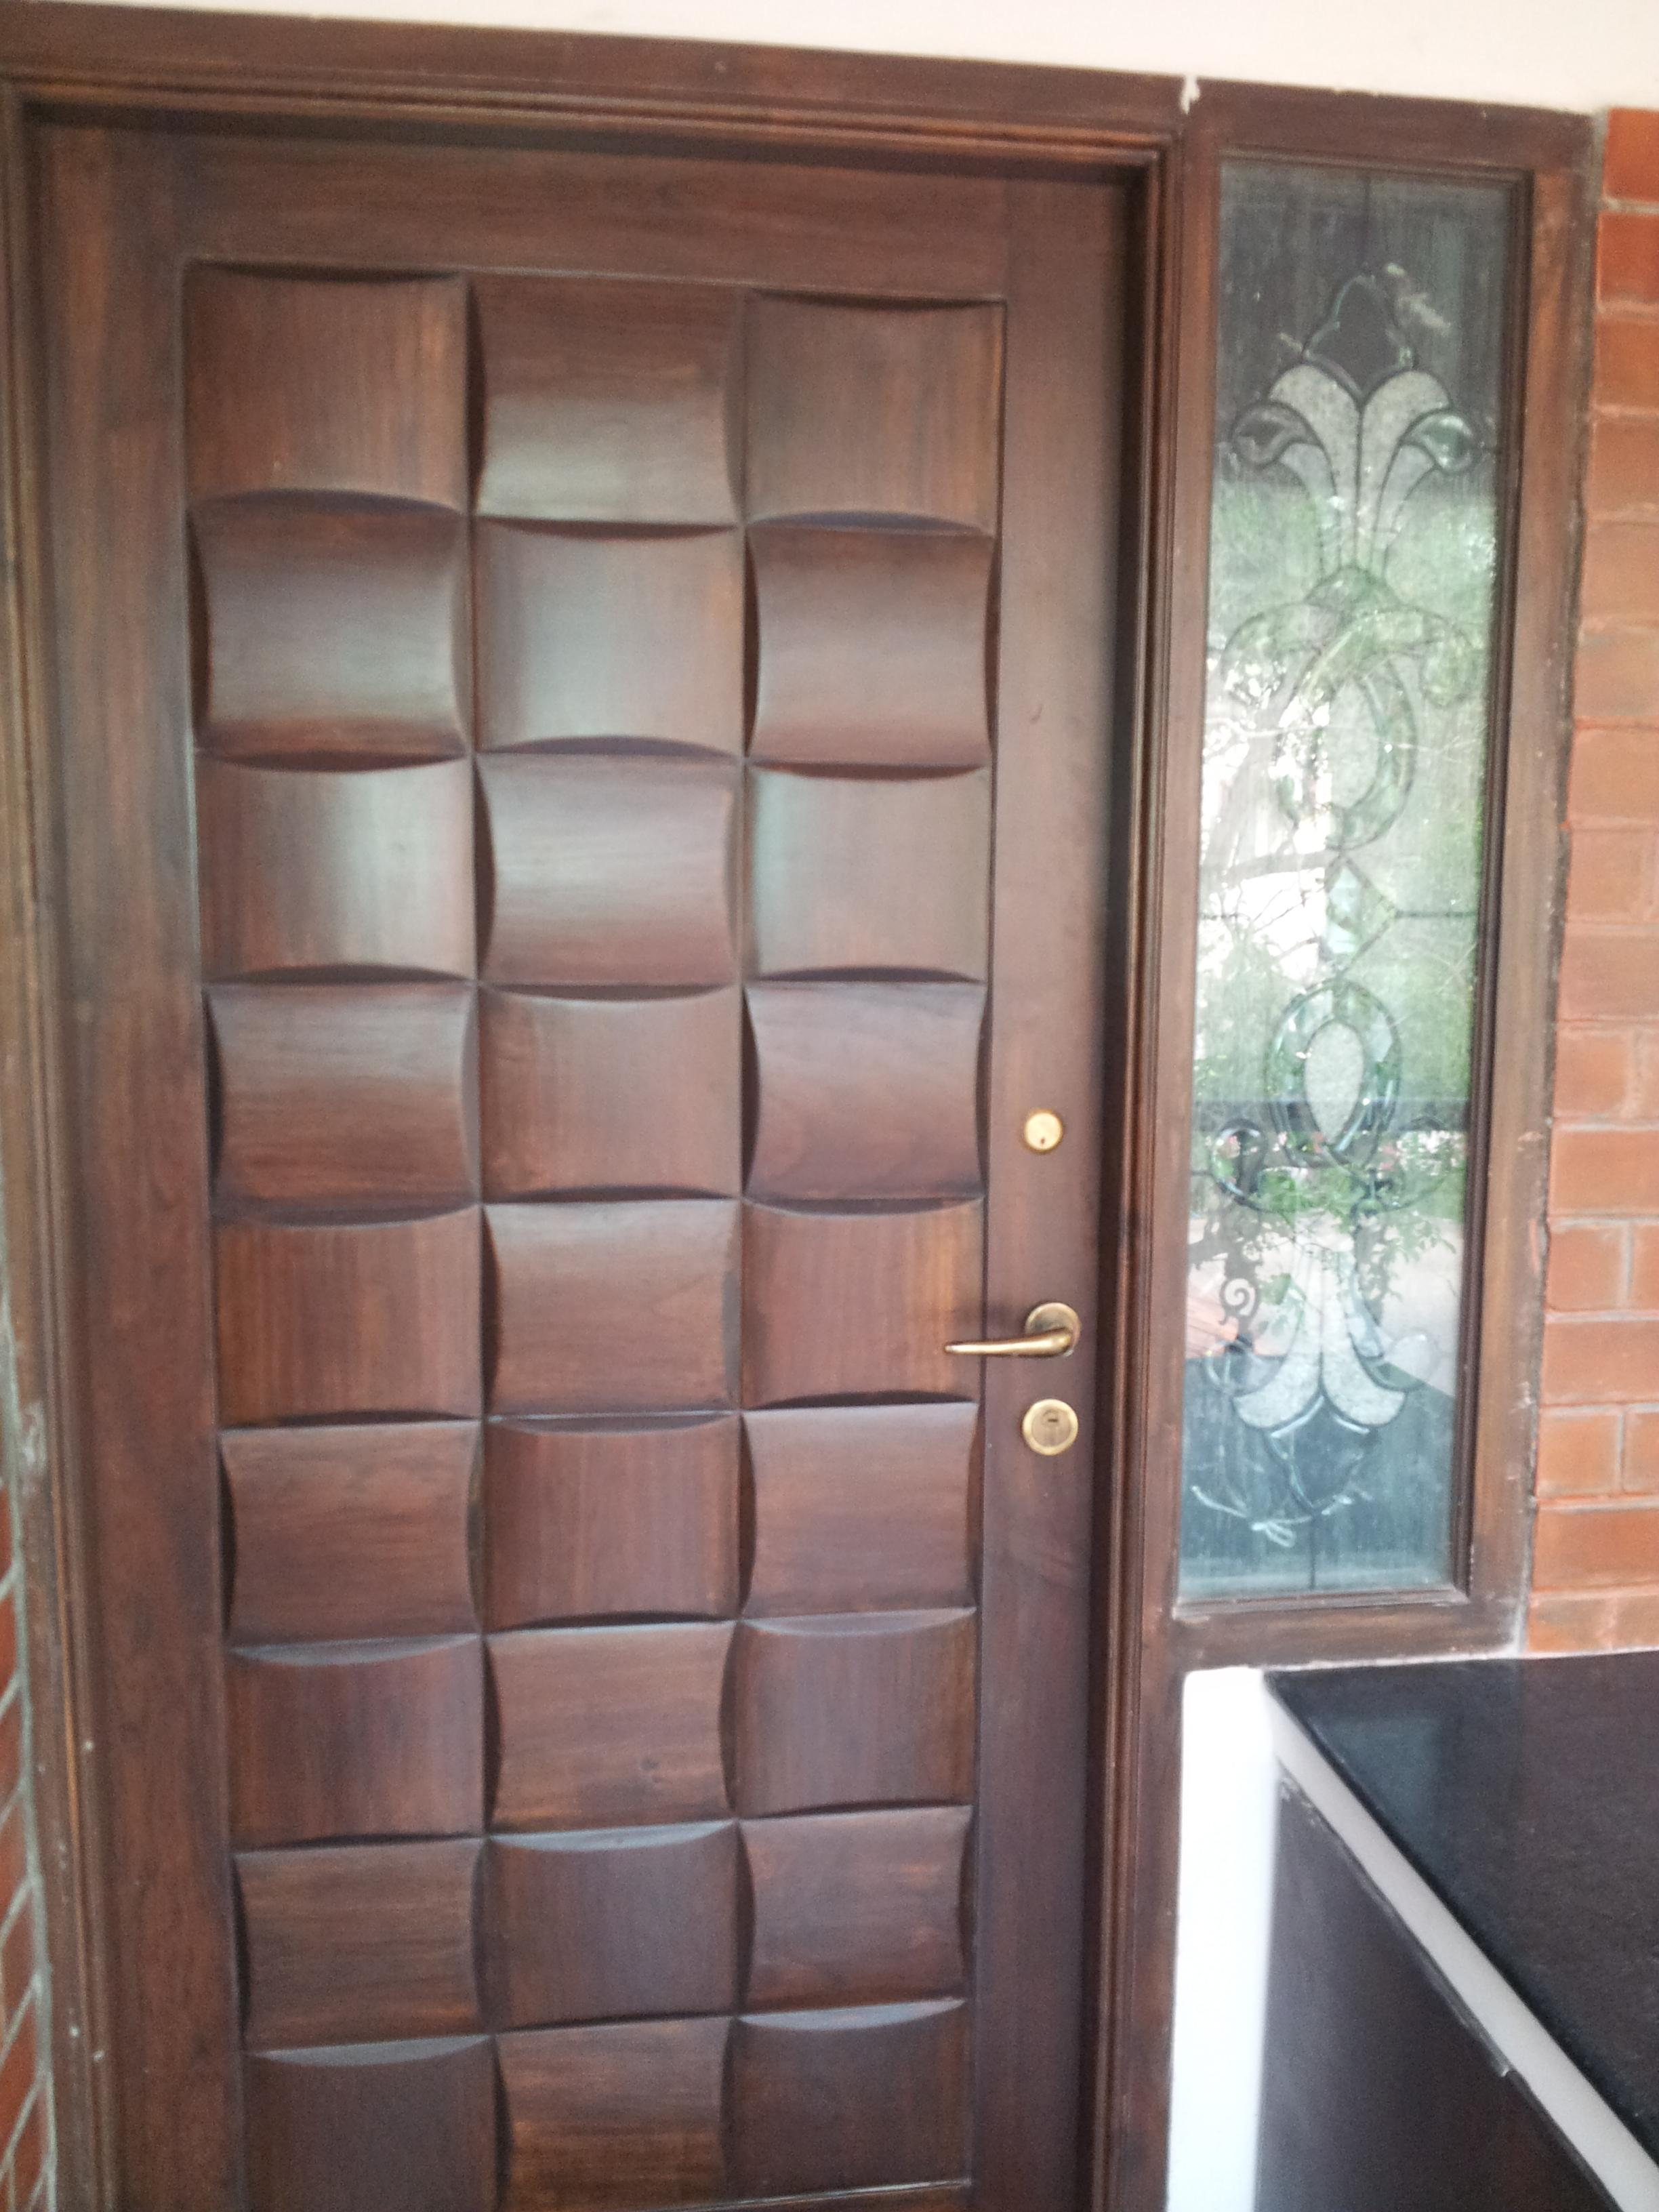 Main door design in wood very popular in 2013 gharexpert for Single wooden door designs 2016